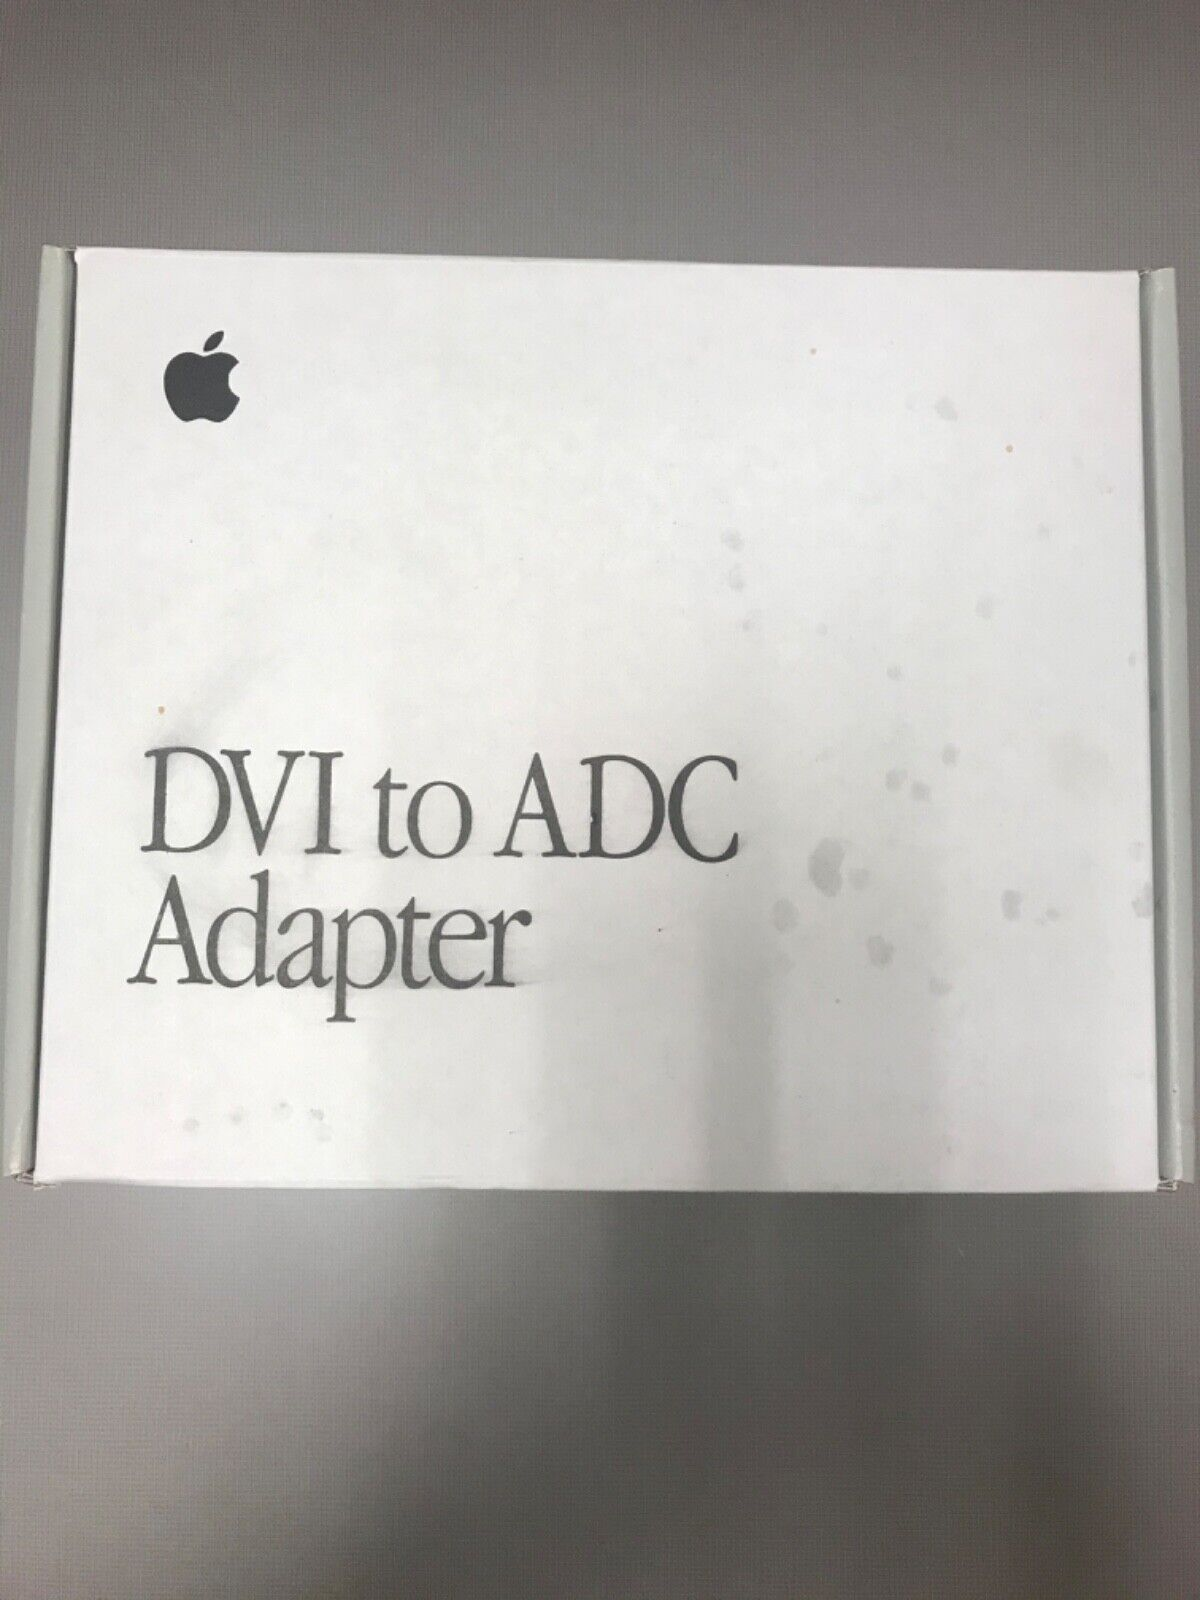 Apple DVI To ADC Adapter New In Box - $39.00